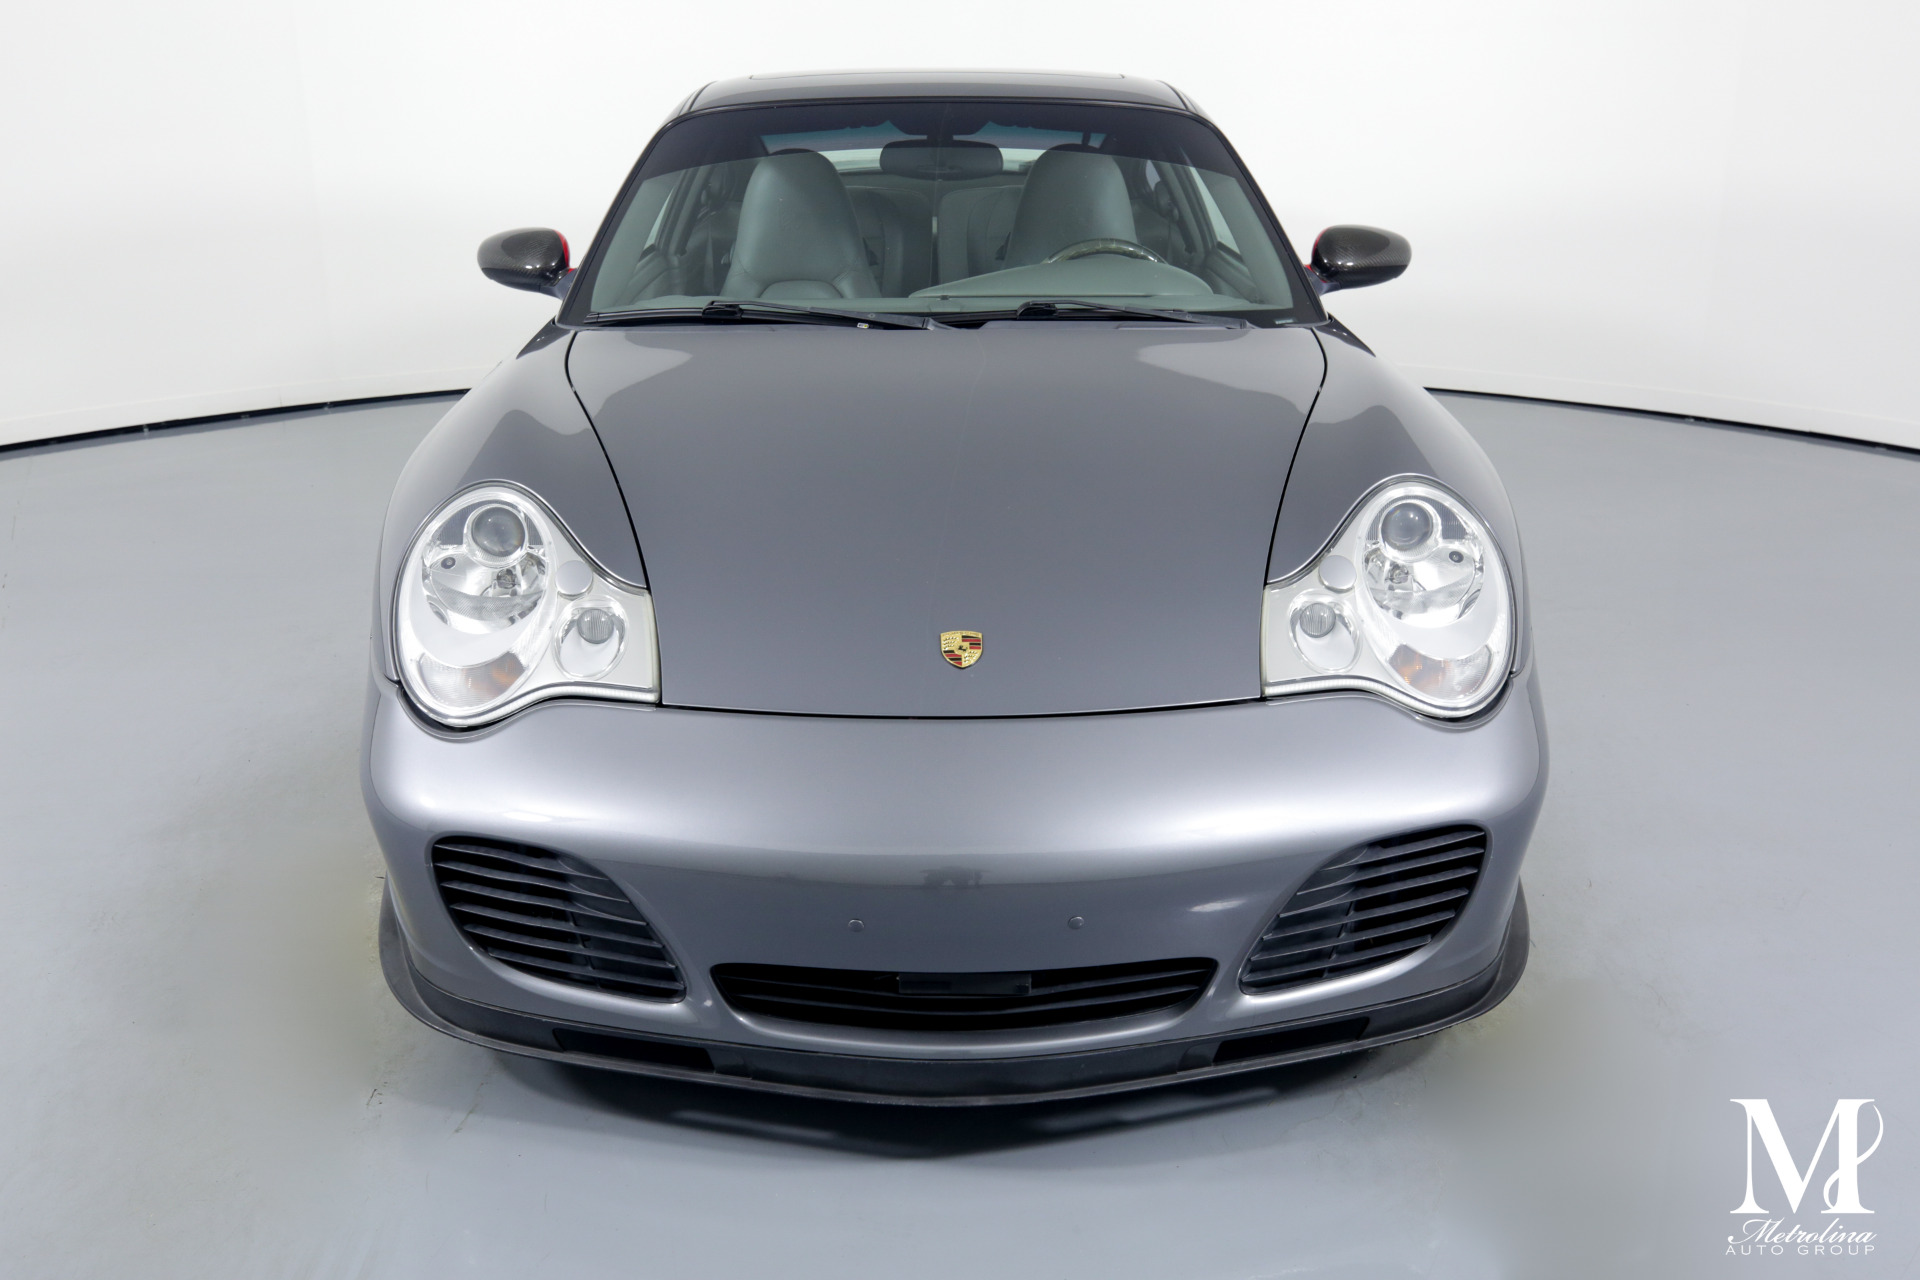 Used 2003 Porsche 911 Turbo for sale $49,996 at Metrolina Auto Group in Charlotte NC 28217 - 3